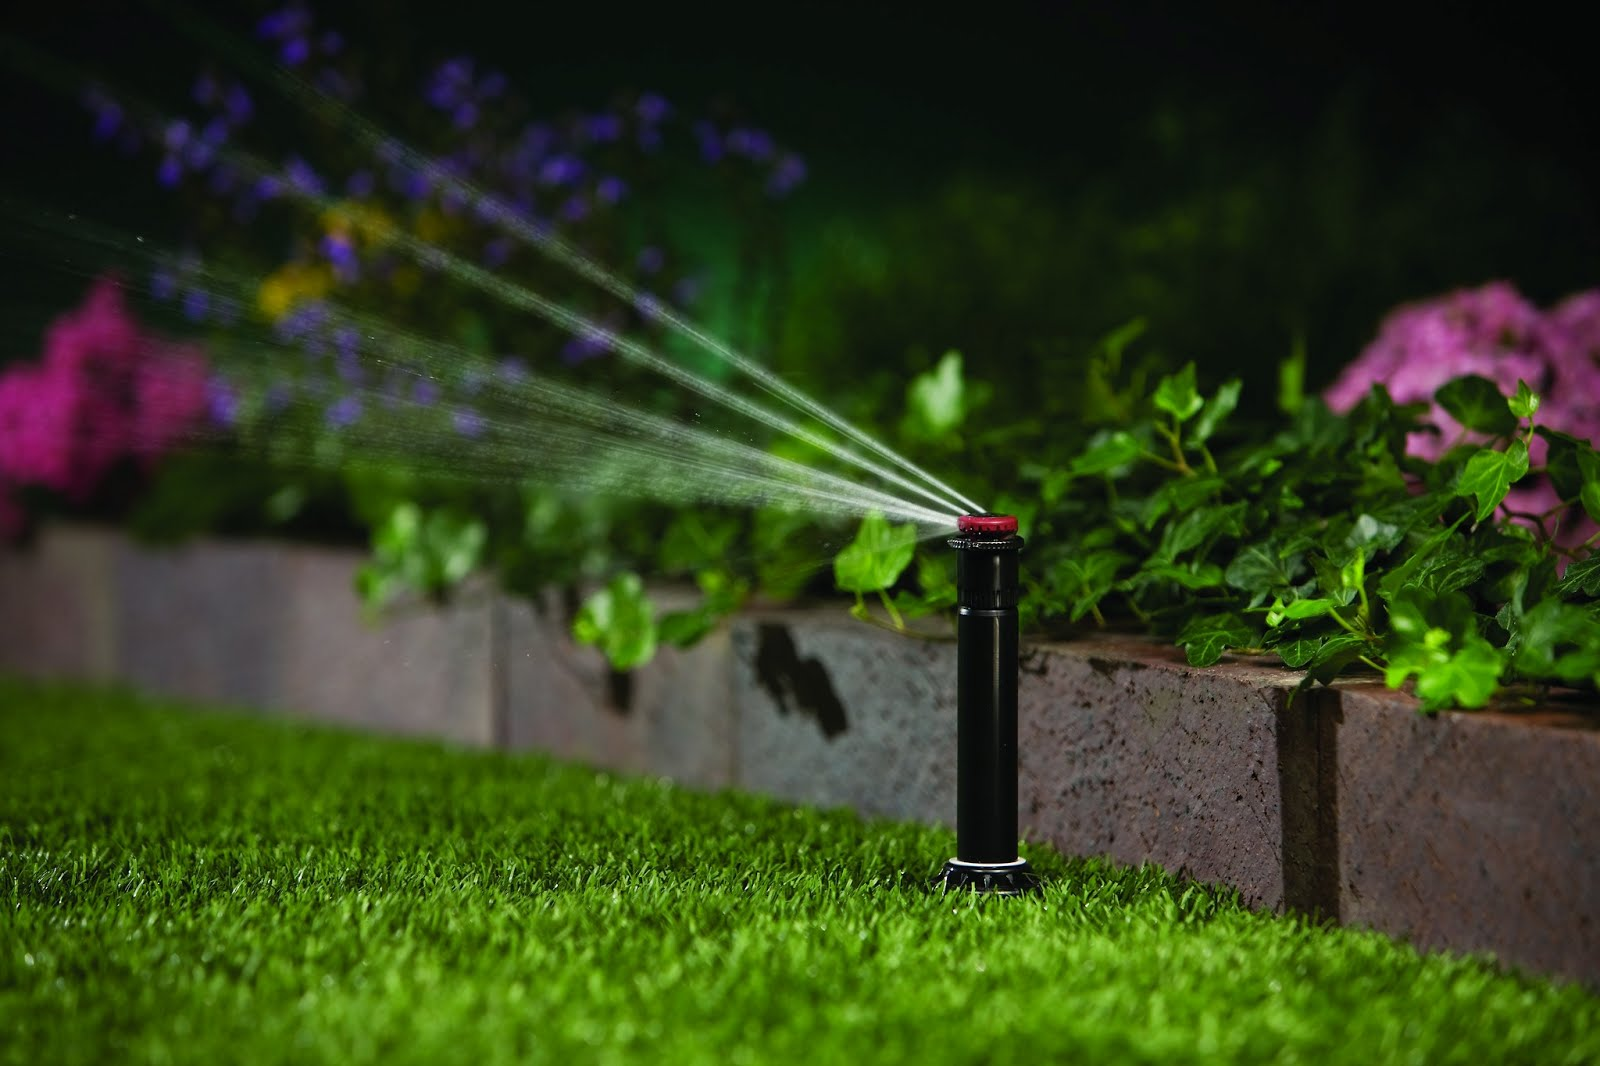 Sprinkler Services-Euless TX Professional Landscapers & Outdoor Living Designs-We offer Landscape Design, Outdoor Patios & Pergolas, Outdoor Living Spaces, Stonescapes, Residential & Commercial Landscaping, Irrigation Installation & Repairs, Drainage Systems, Landscape Lighting, Outdoor Living Spaces, Tree Service, Lawn Service, and more.